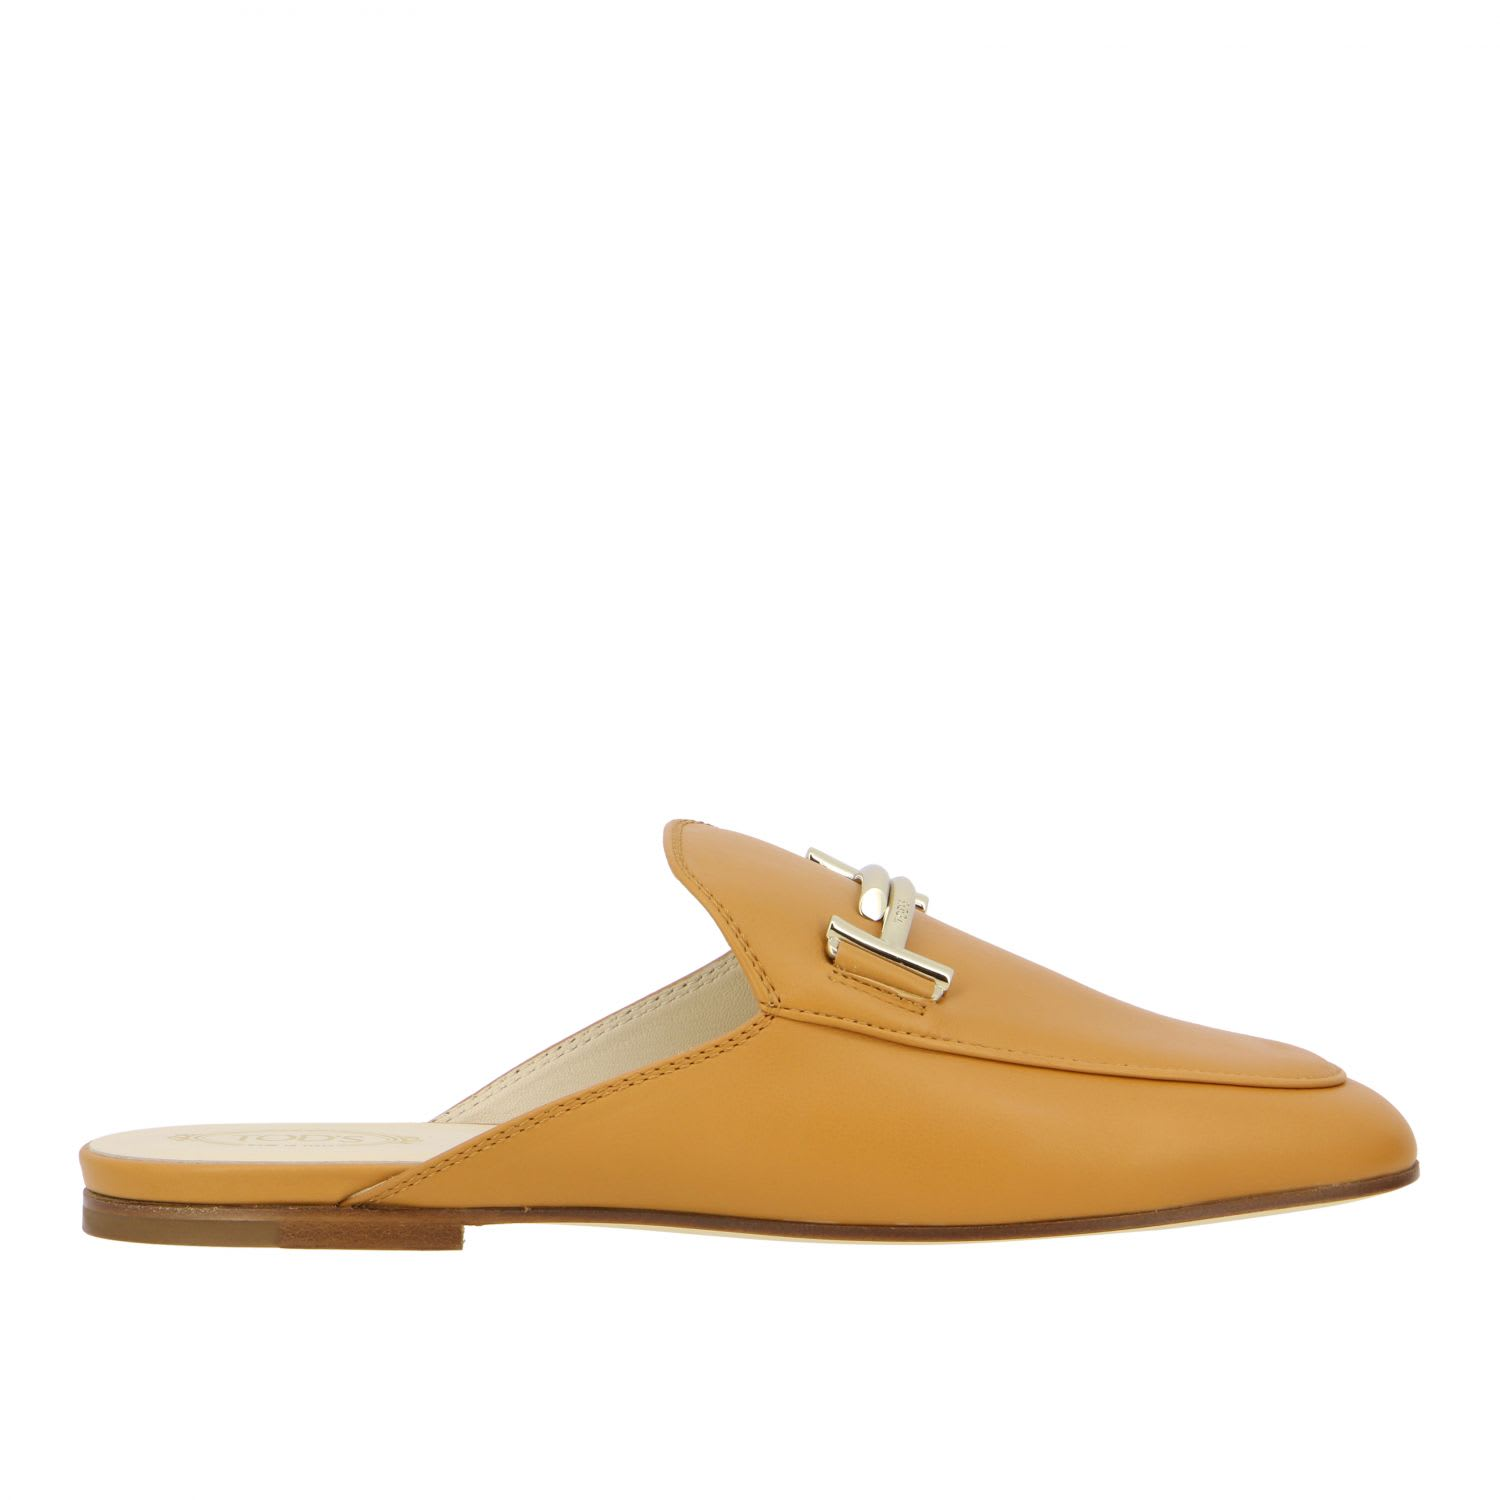 Loafers Tods Sabot In Smooth Leather With Double TComposition: 100% Calfskin